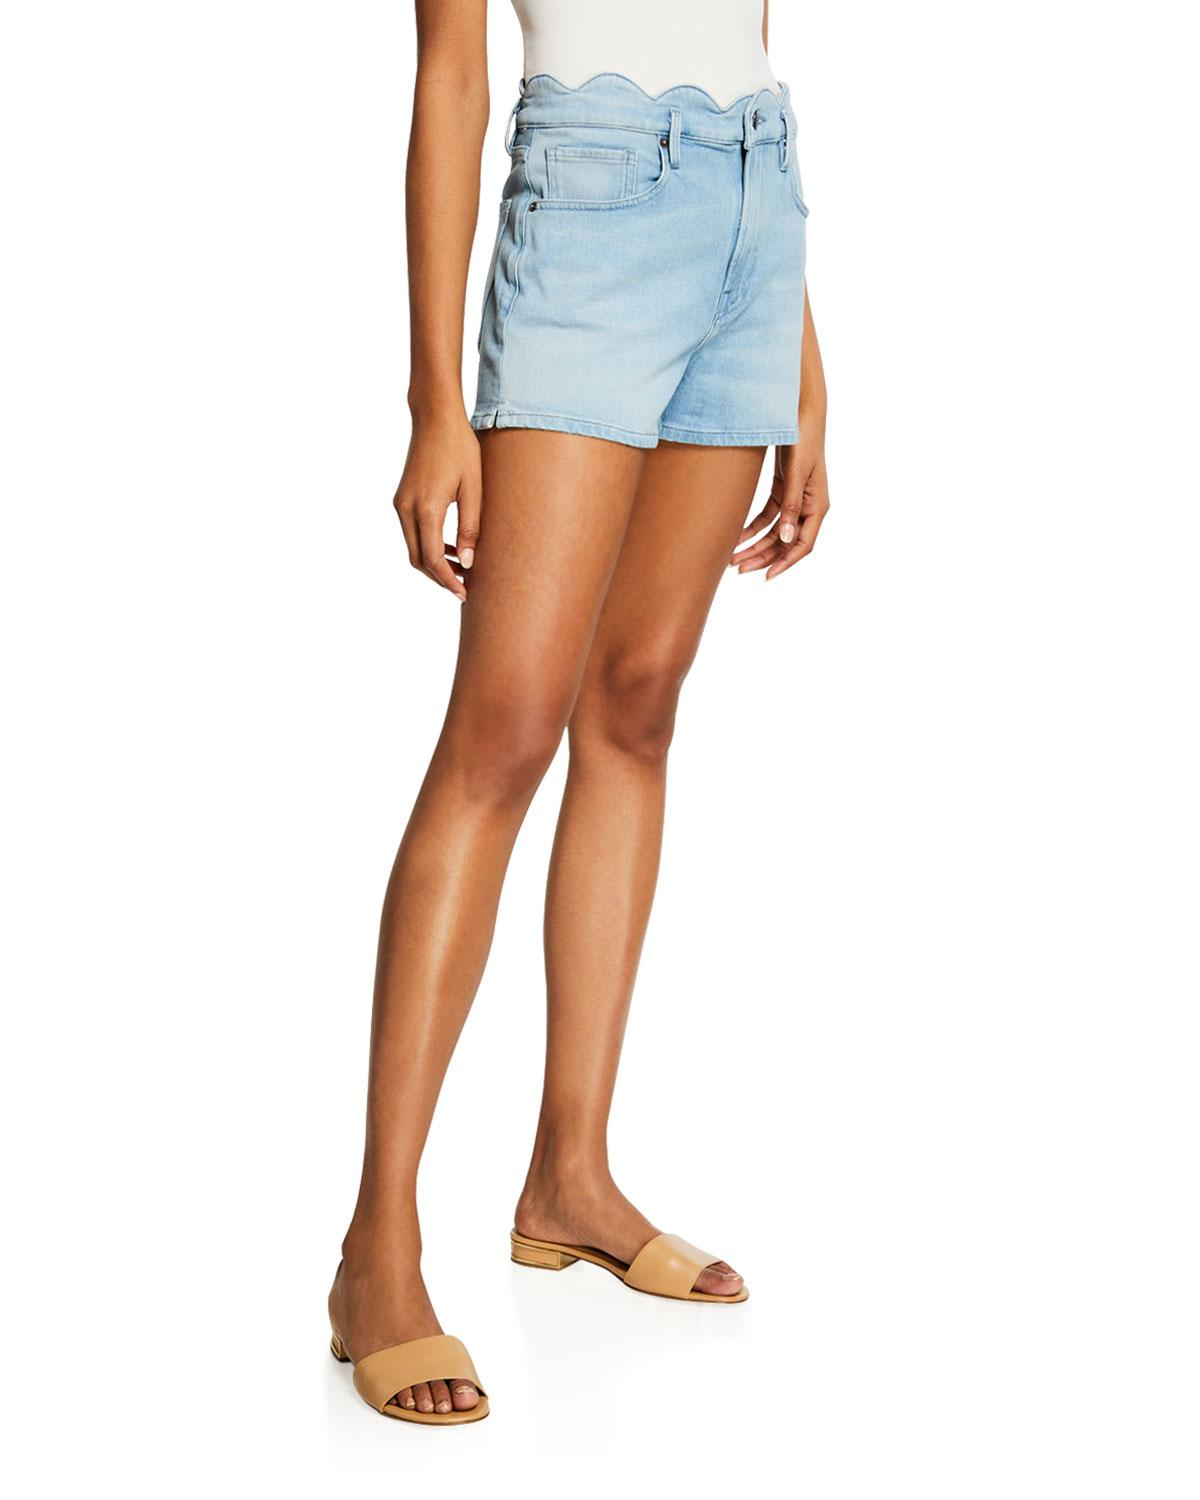 FRAME Scallop Edge Short - Wright